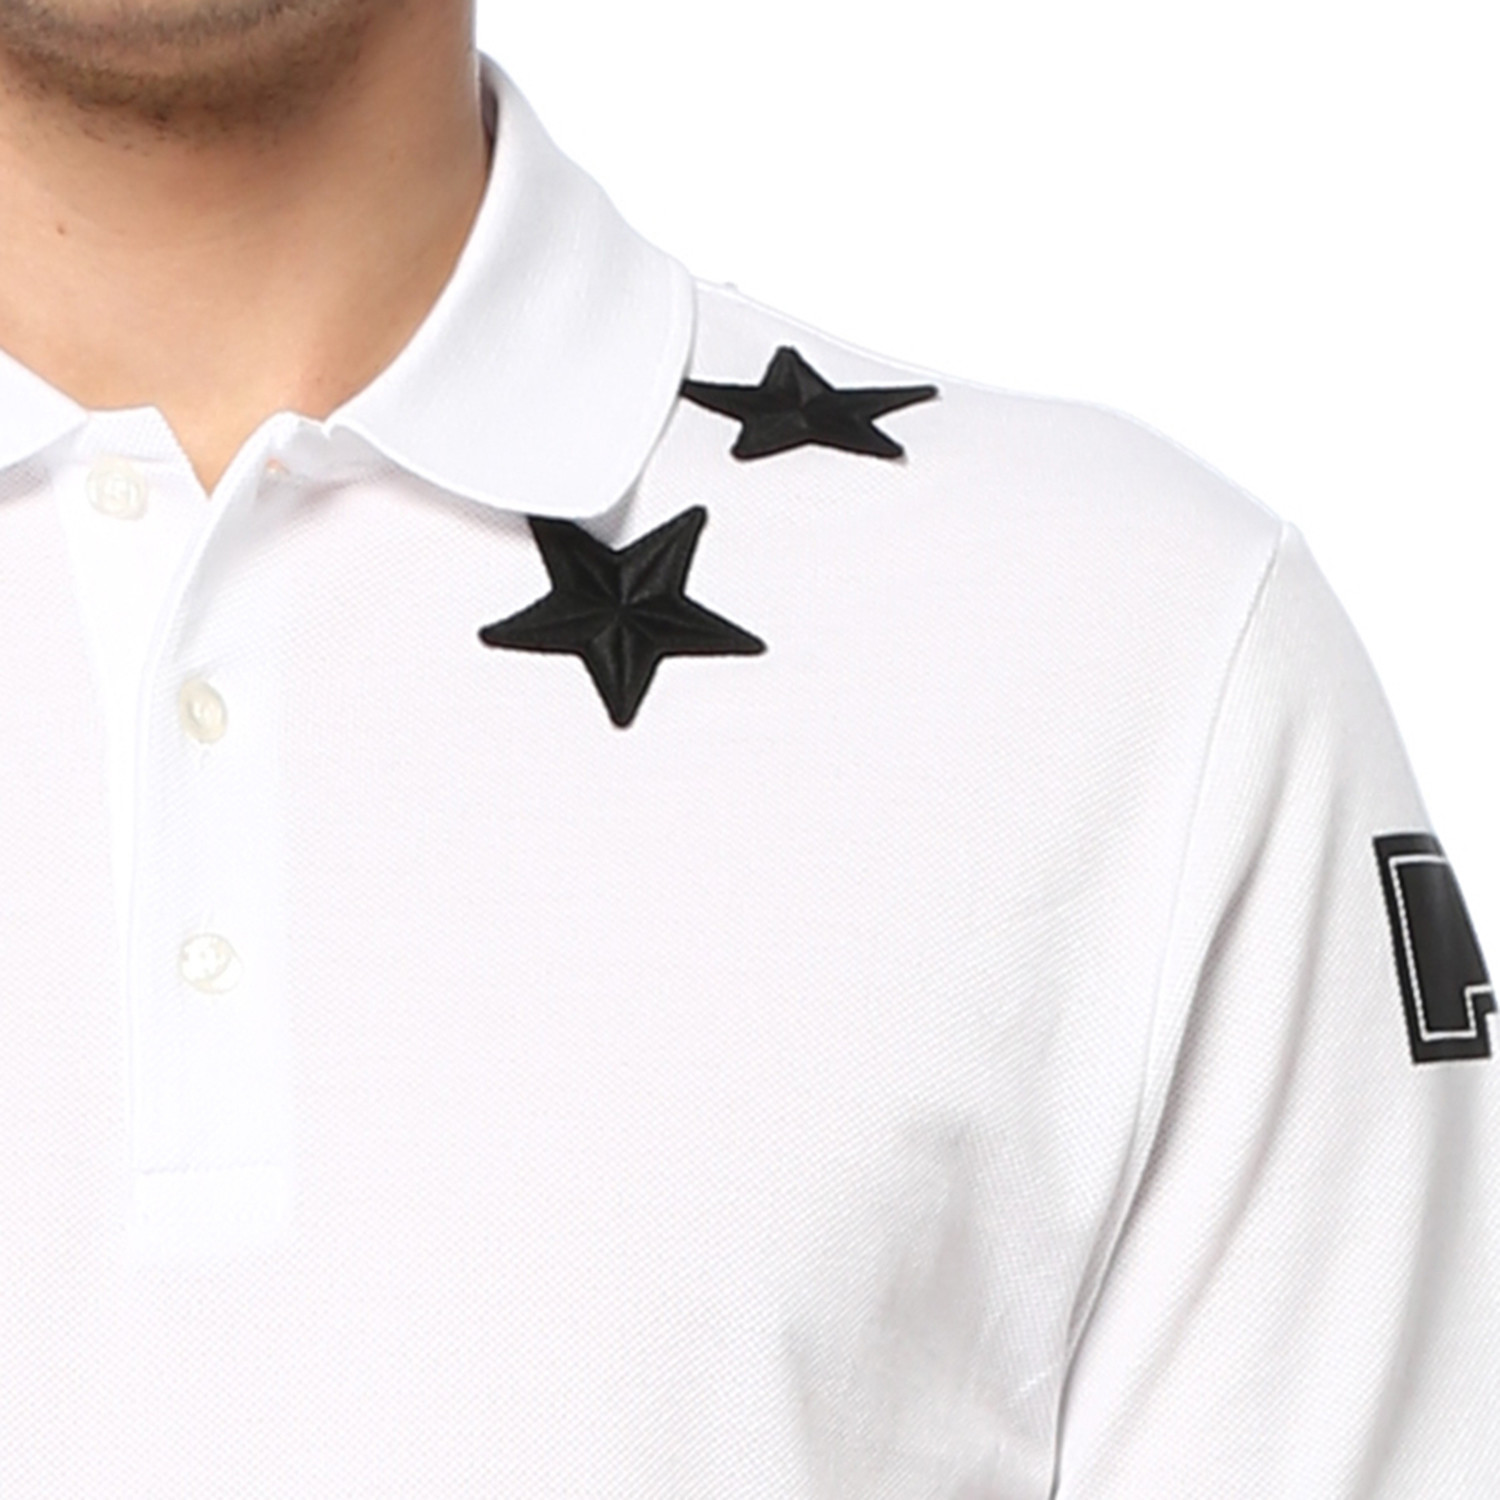 872984f6 Givenchy Stars and 74 Details Polo // White (XL) - Kenzo, Givenchy ...